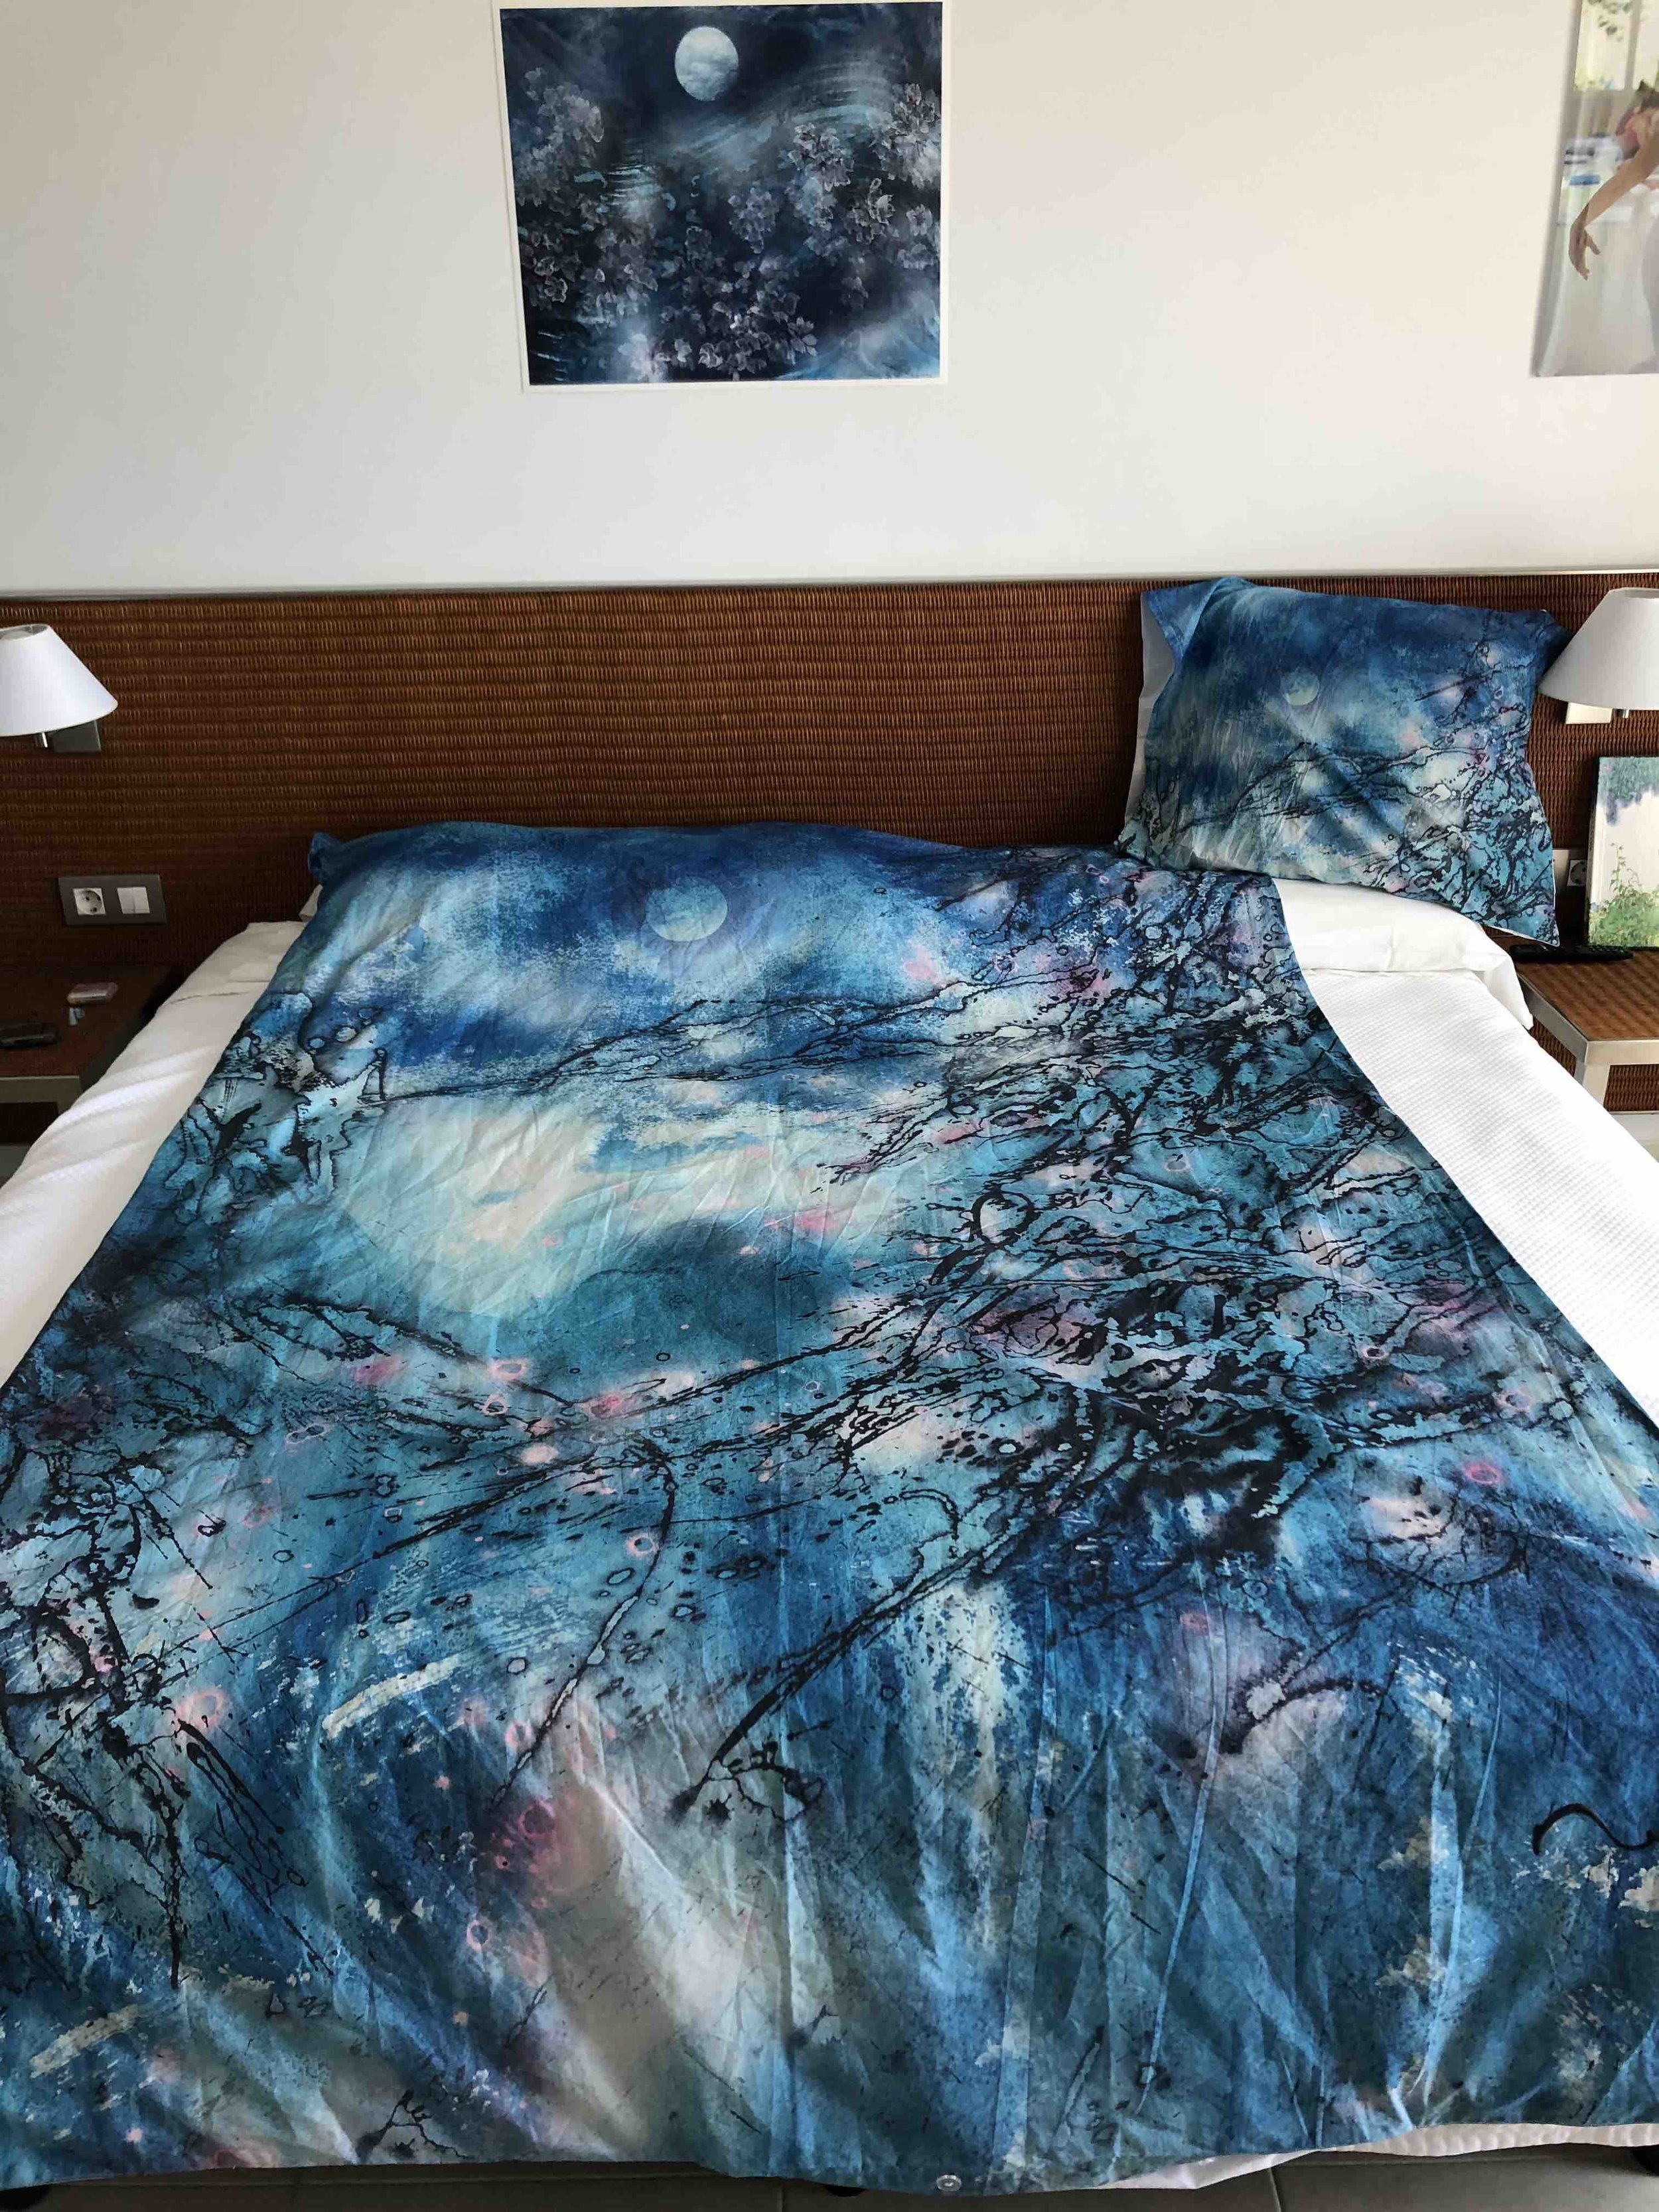 Sleeping in a bedcover with Meera's paintings!